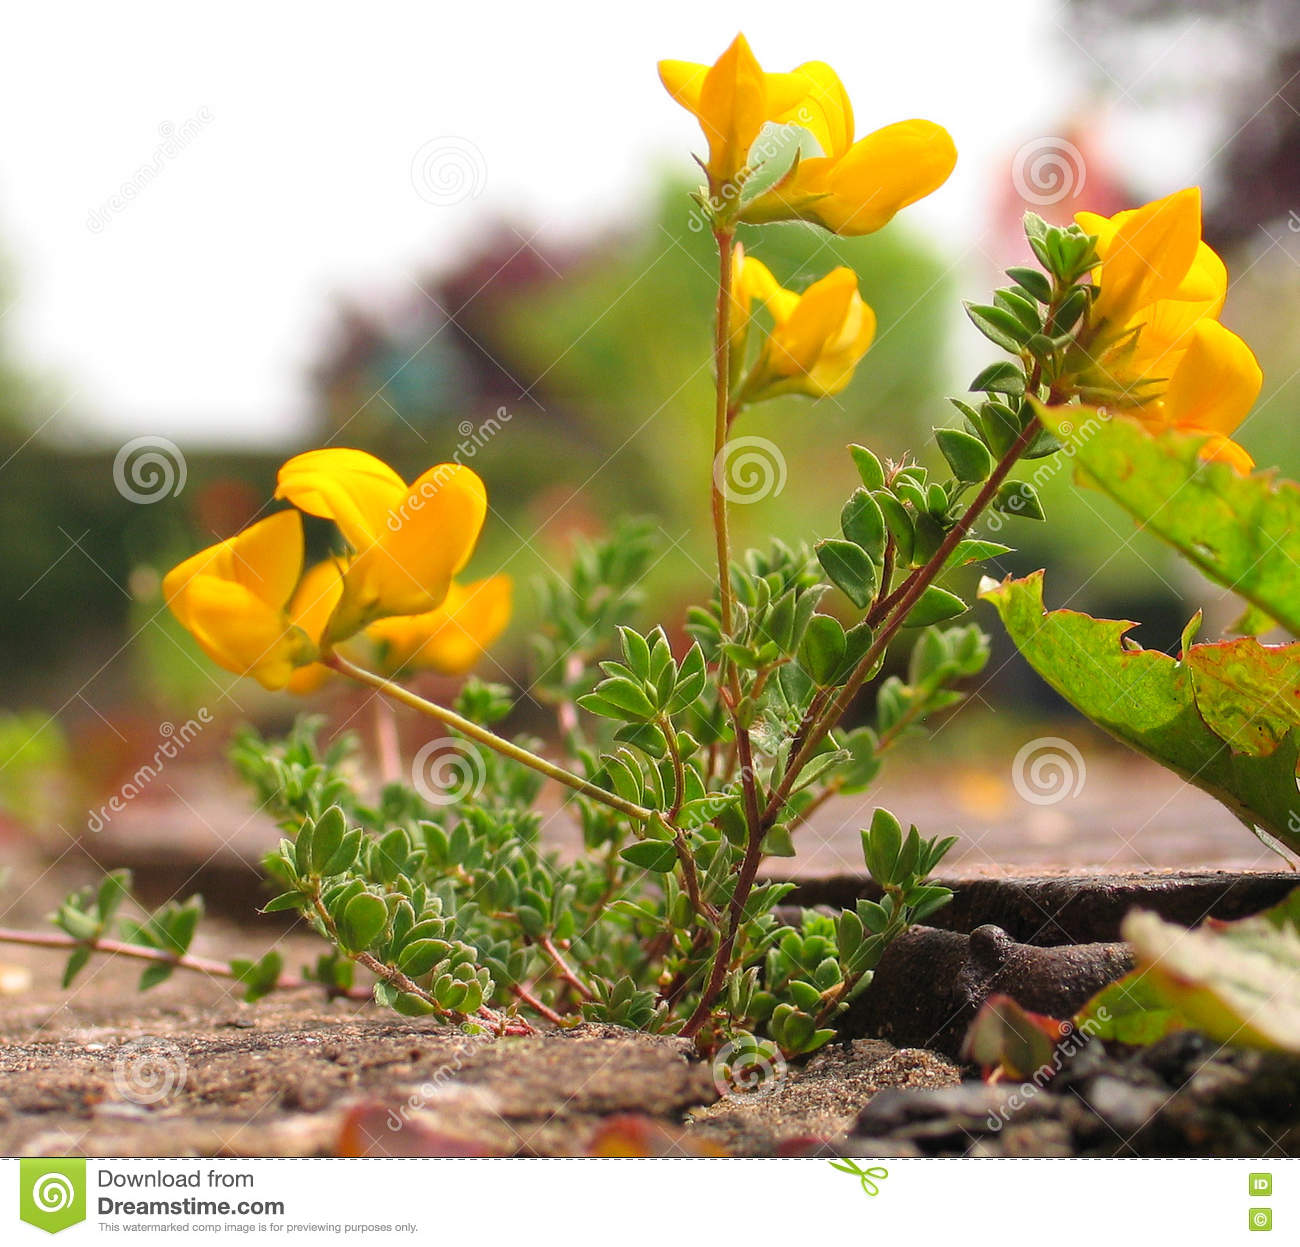 Common Birds Foot Trefoil Stock Photo Image Of Weed 75102216